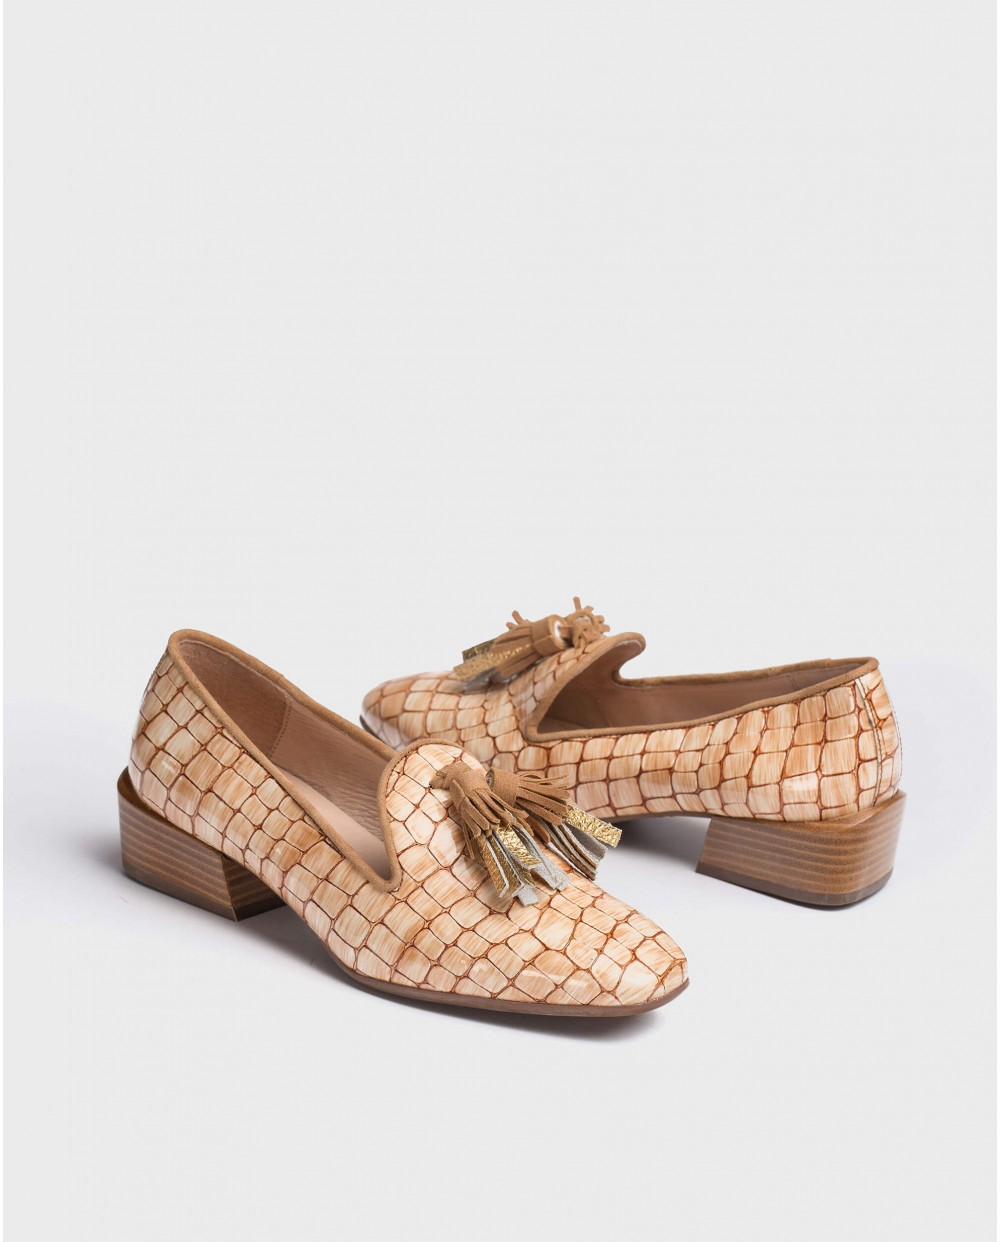 Wonders-Flat Shoes-Moccasin with leather tassels